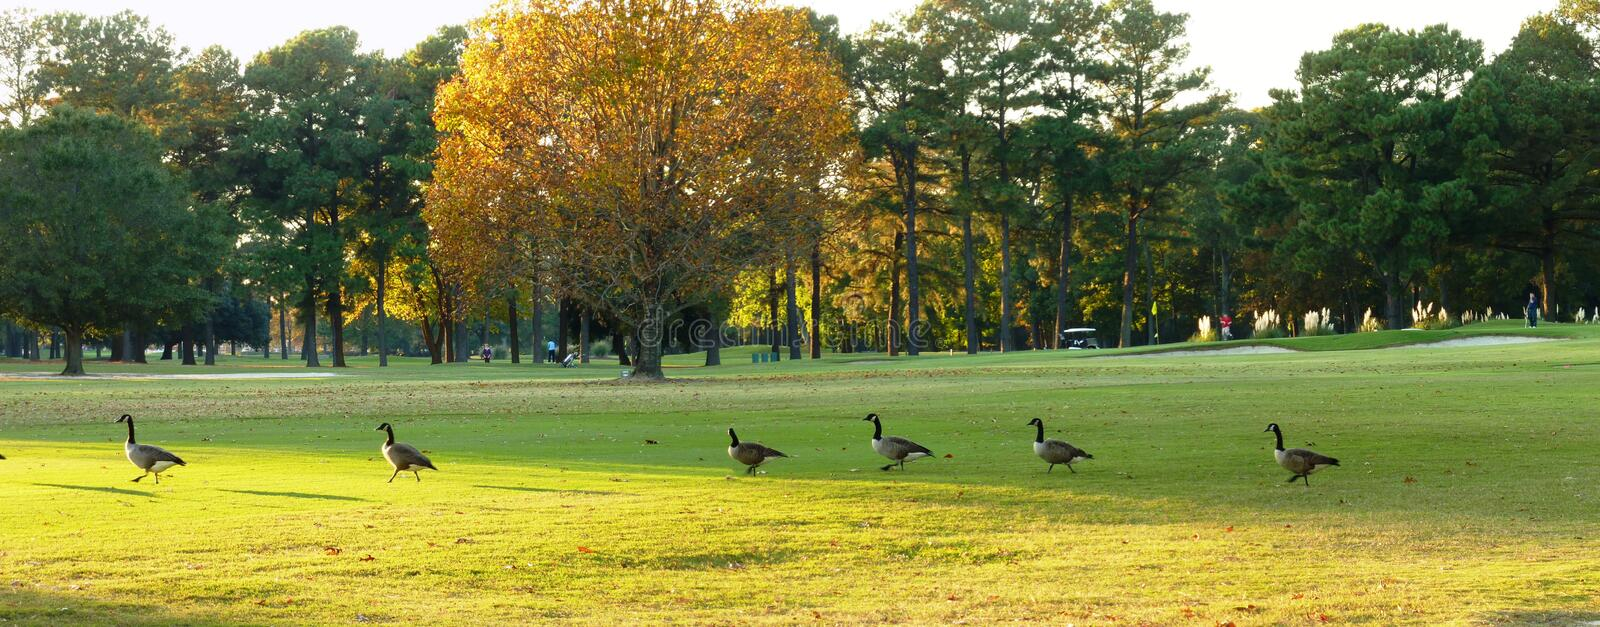 Geese on golf course stock photography